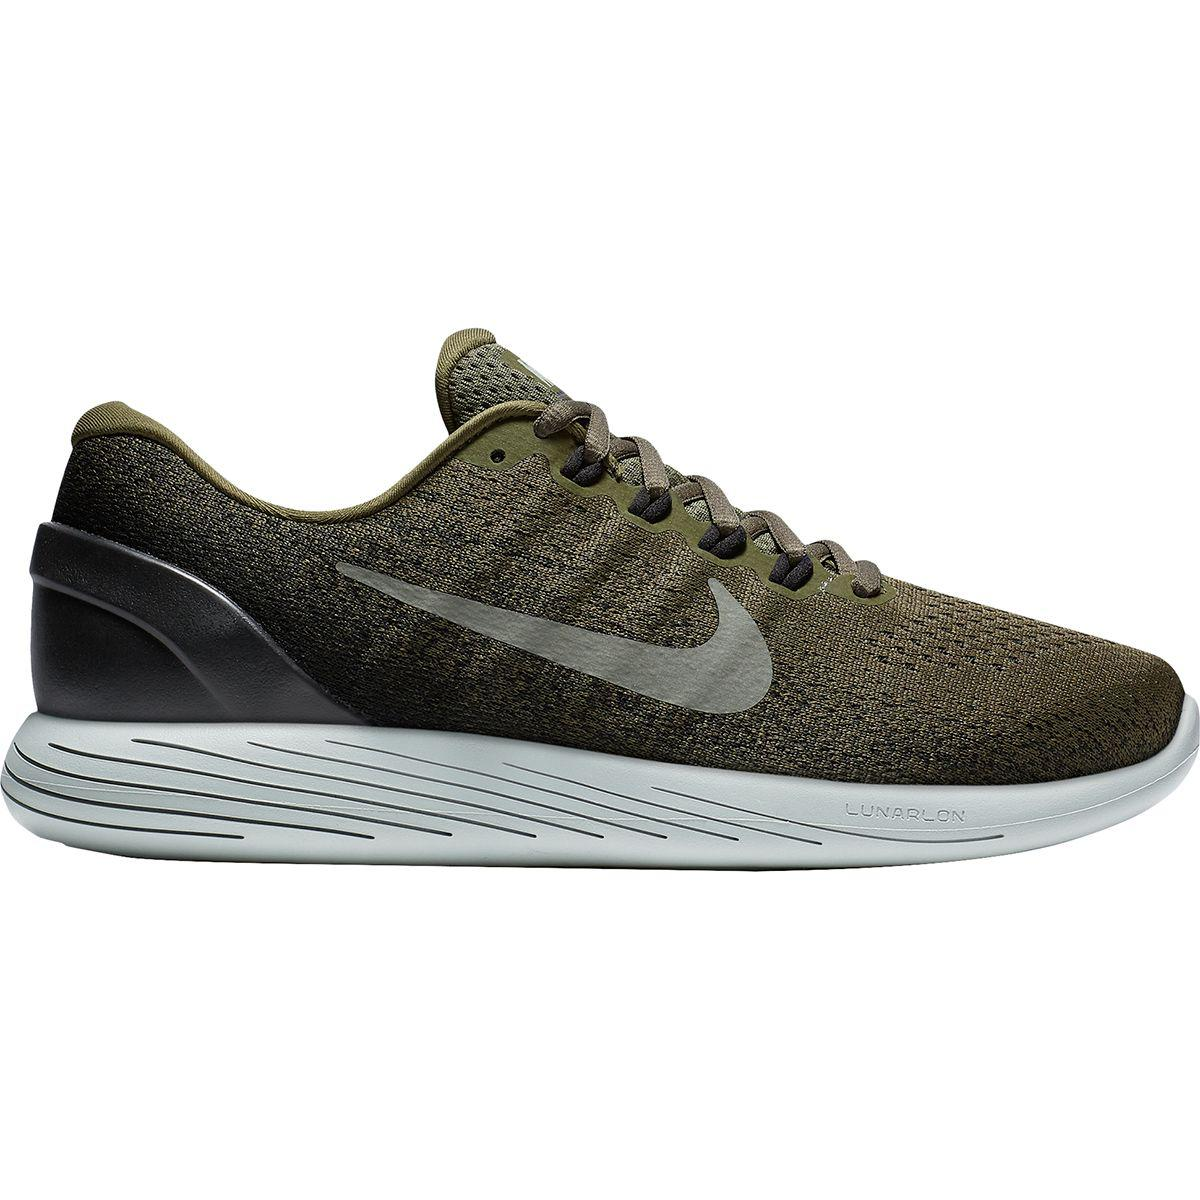 2b2cc7a1269cc Lyst - Nike Lunarglide 9 Running Shoe for Men